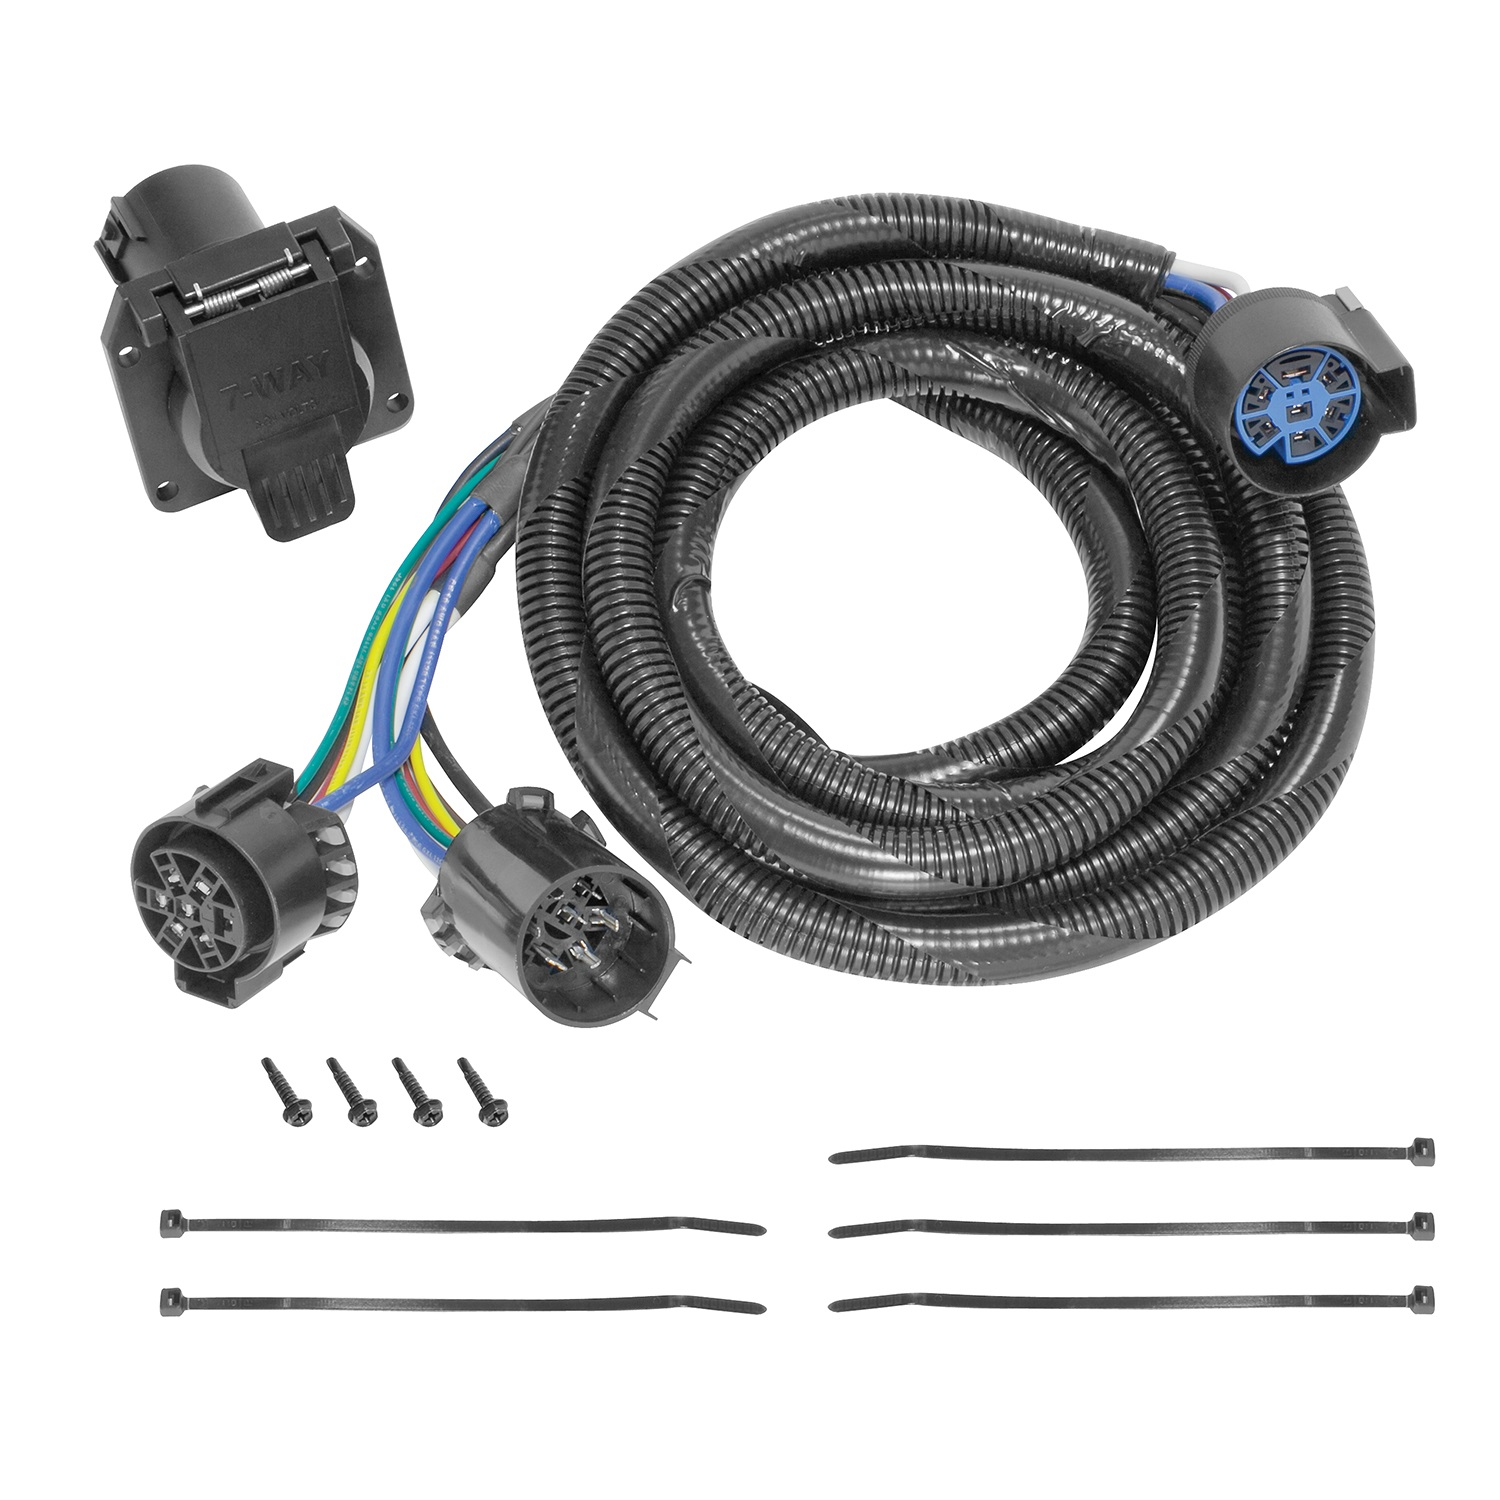 Tow Ready 20146 Fifth Wheel Adapter Harness